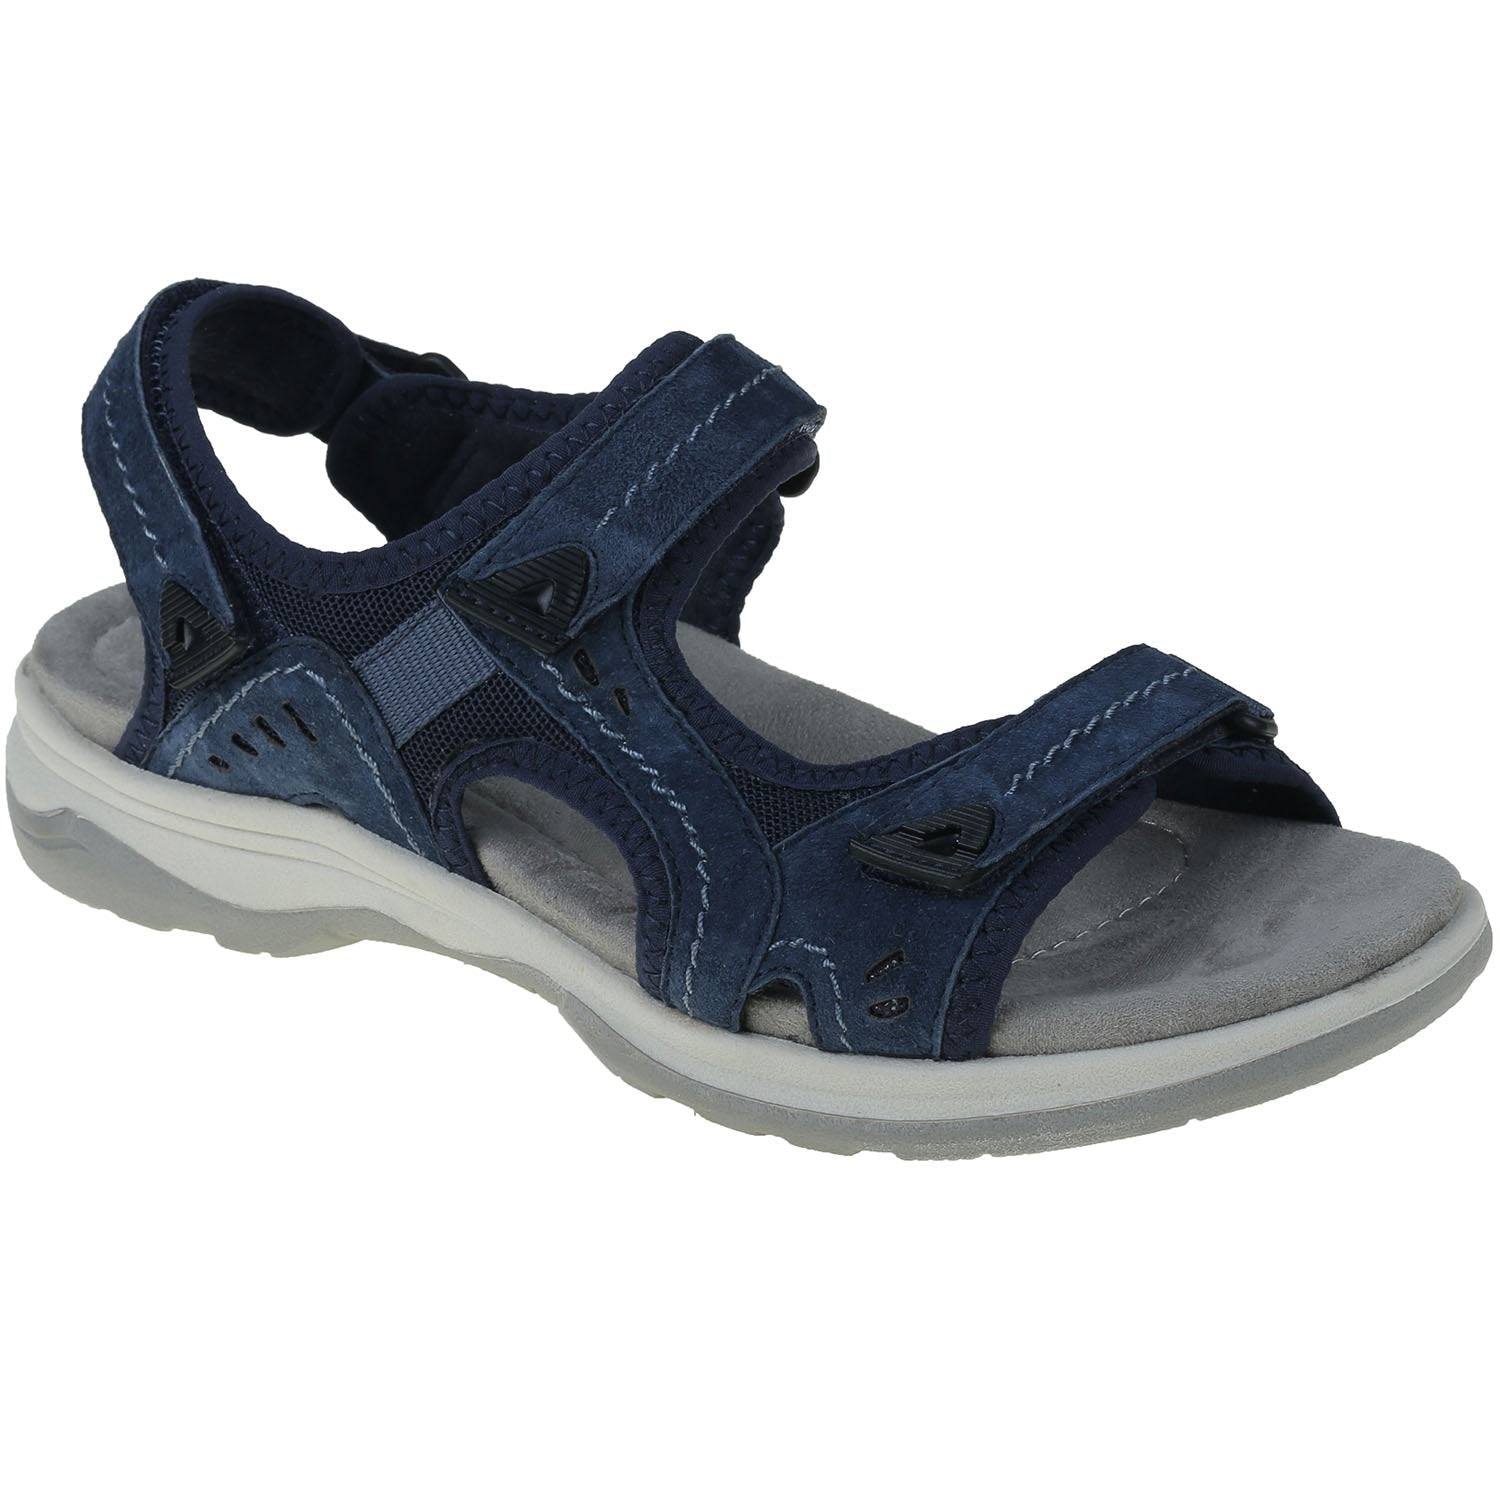 EARTH ORIGINS LADIES HIGGINS-HALTON NAVY BLUE SANDAL